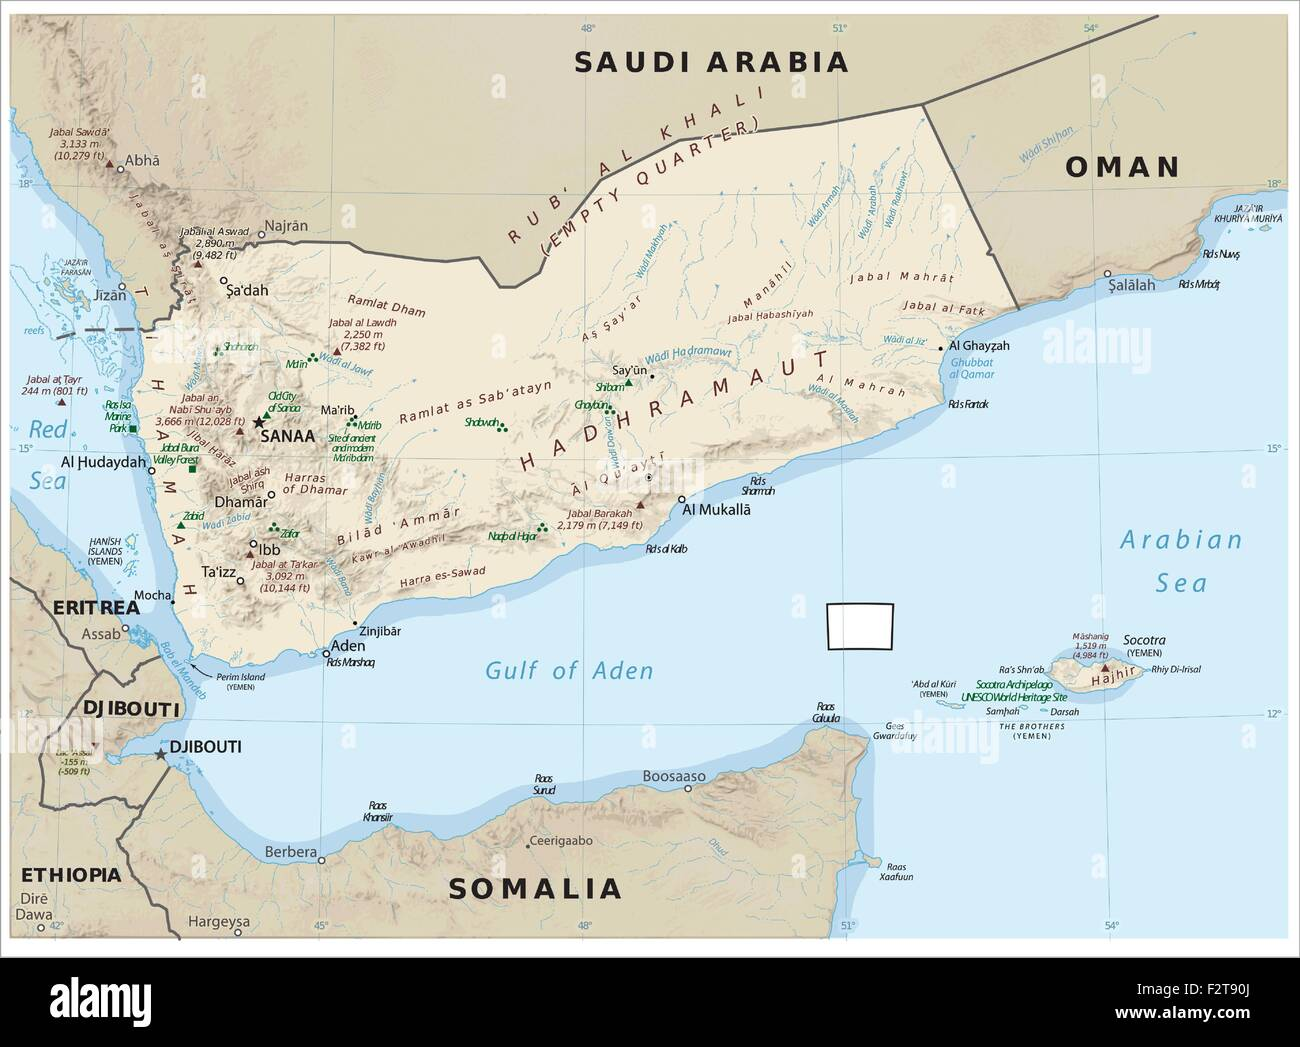 Yemen physiography map - Stock Vector